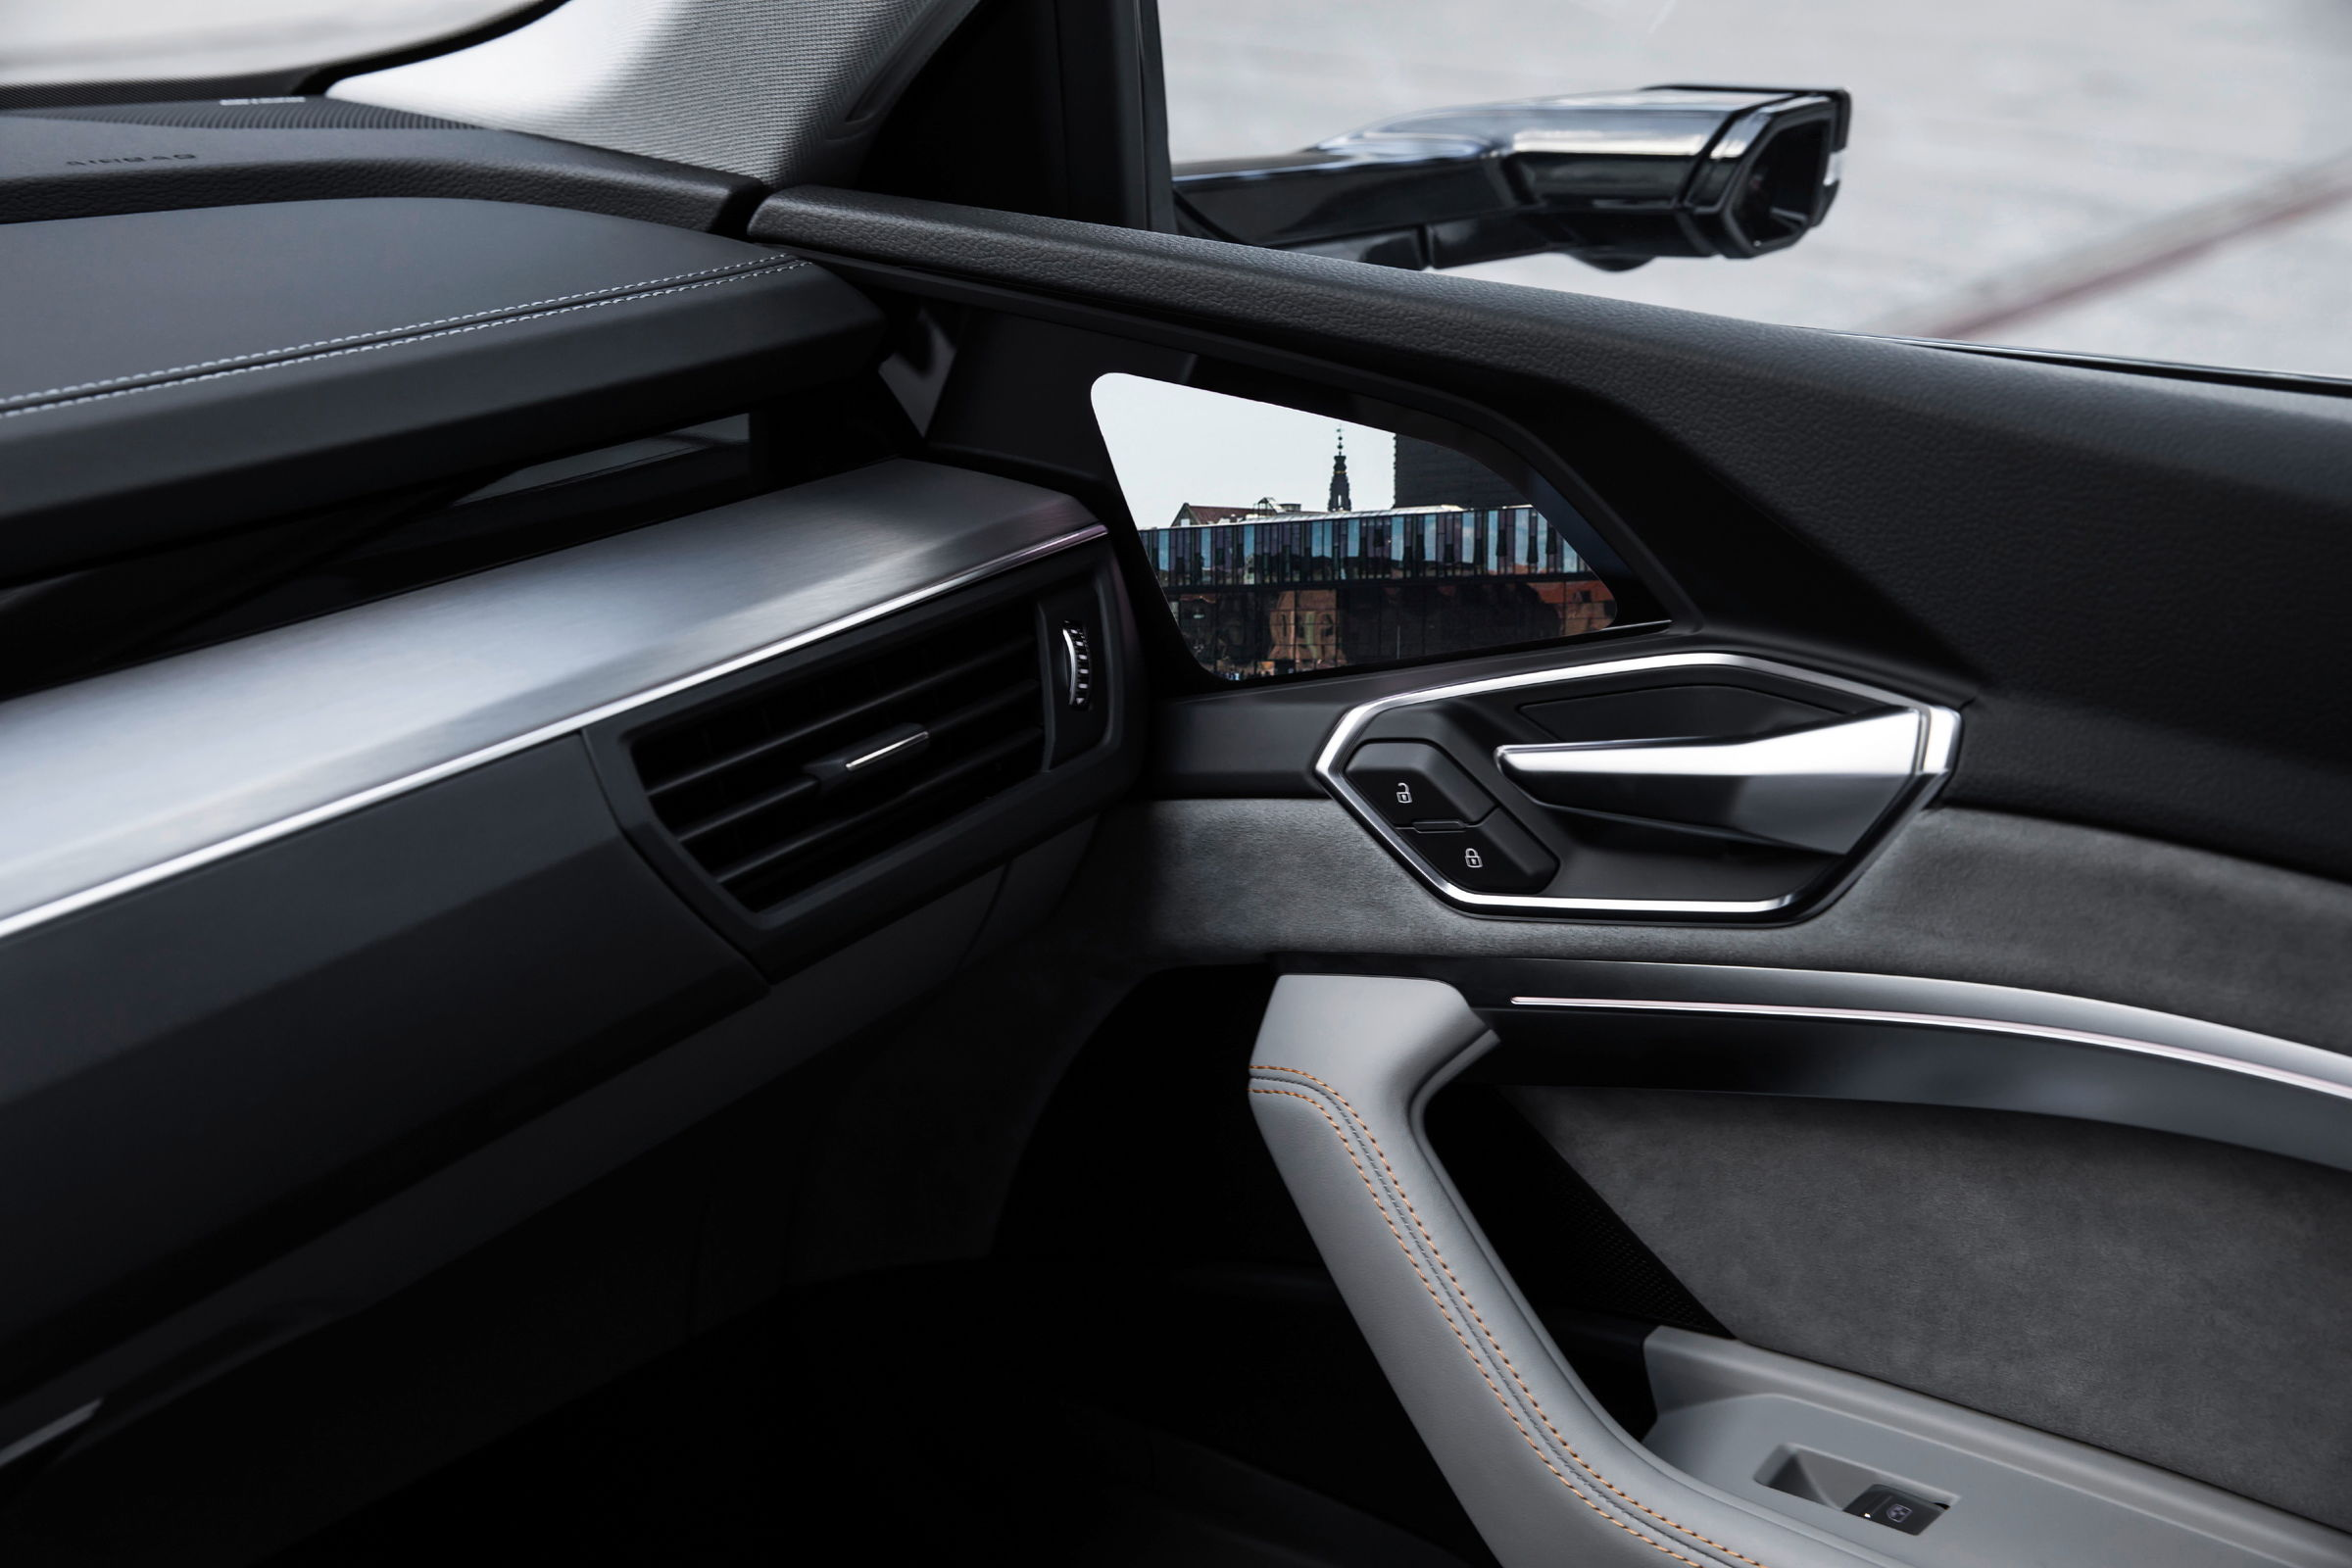 The interior of the Audi e-tron prototype